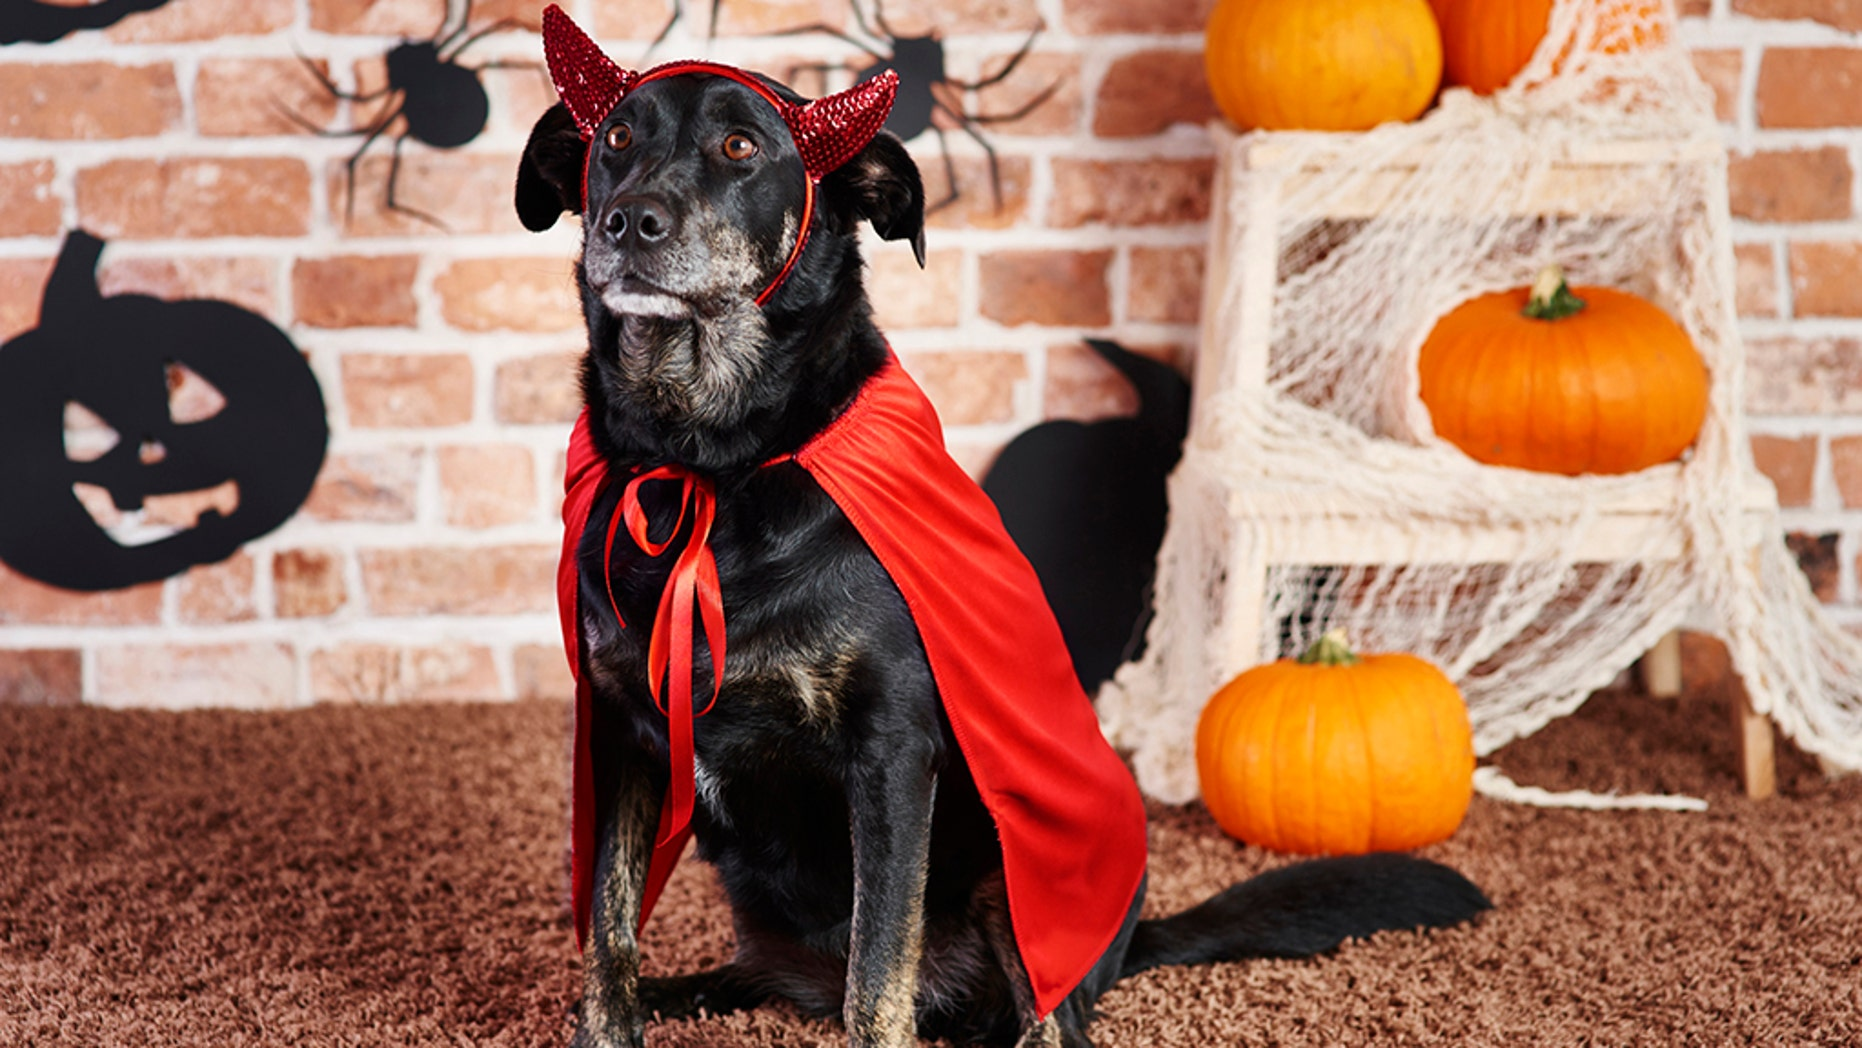 Have fun with your pet this Halloween by dressing them in a costume.